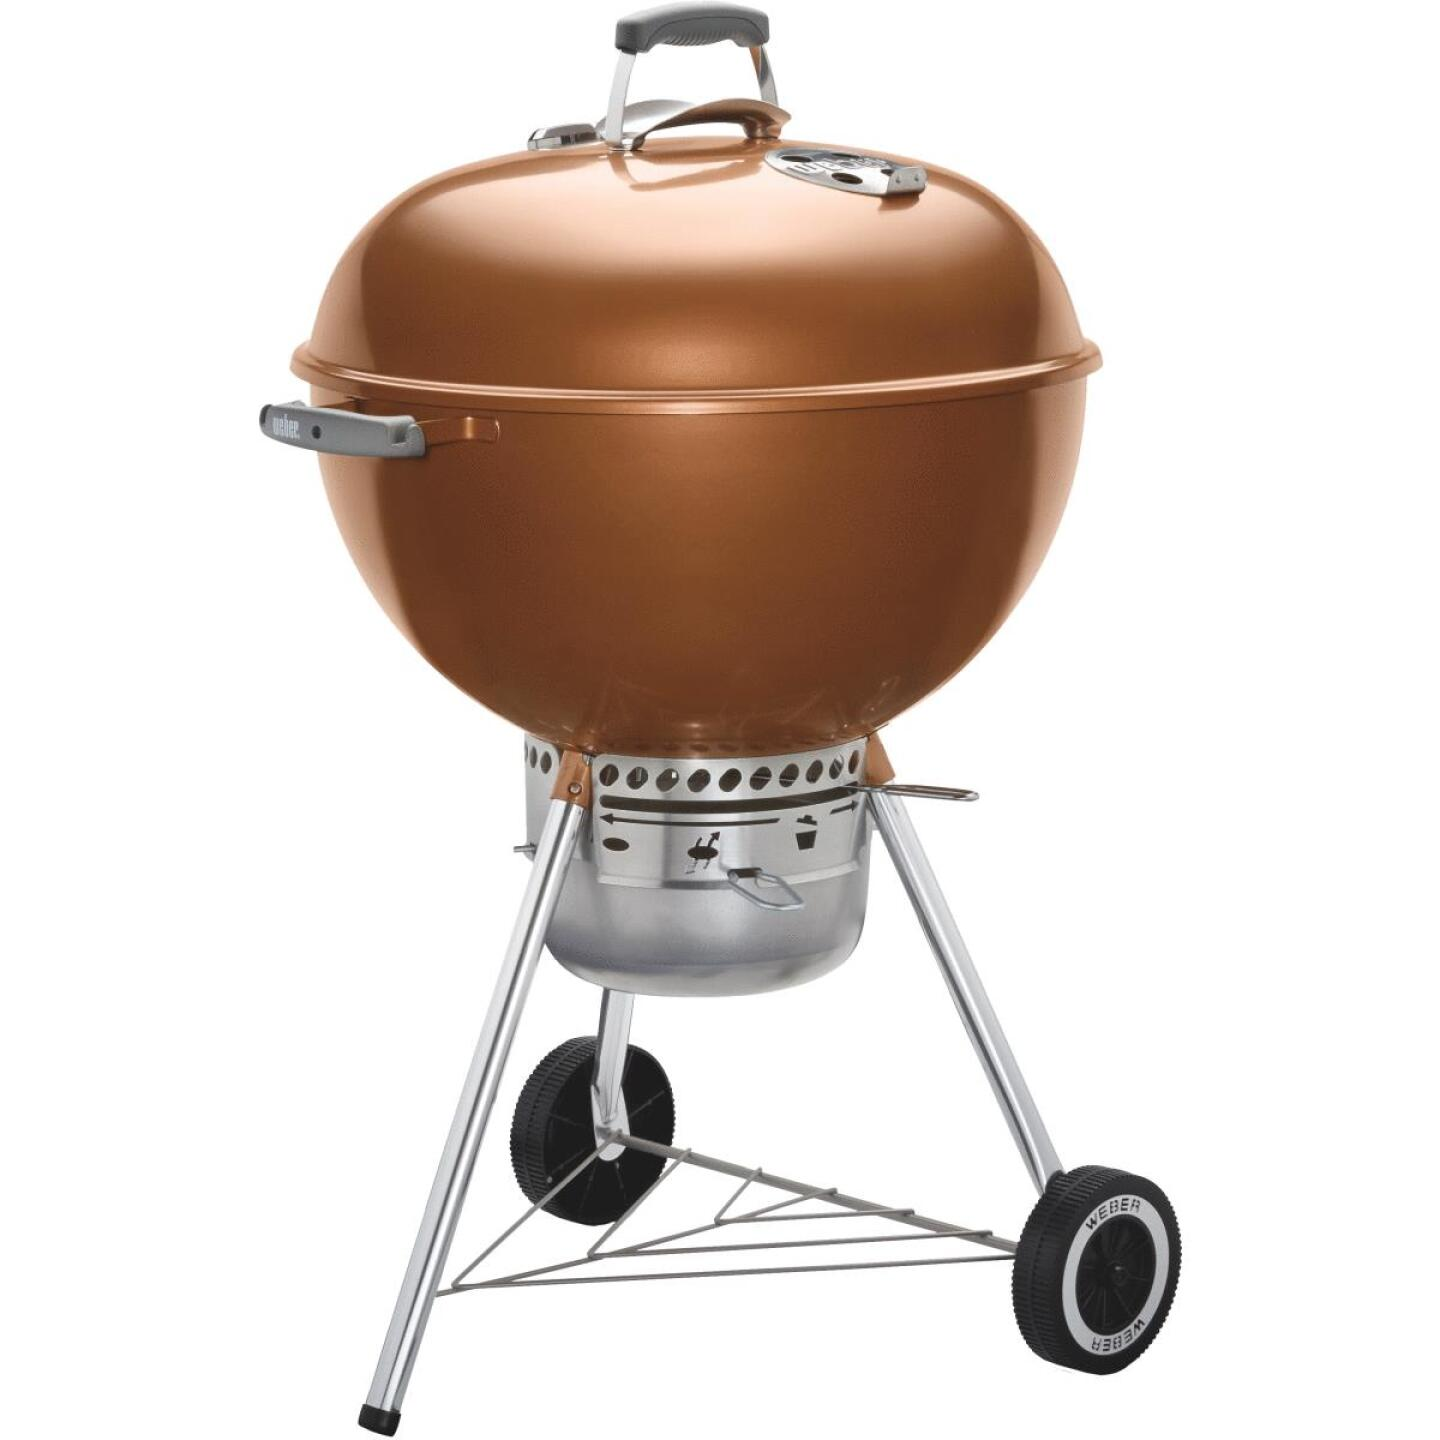 Weber Original Kettle 22 In. Dia. Copper Premium Charcoal Grill Image 1